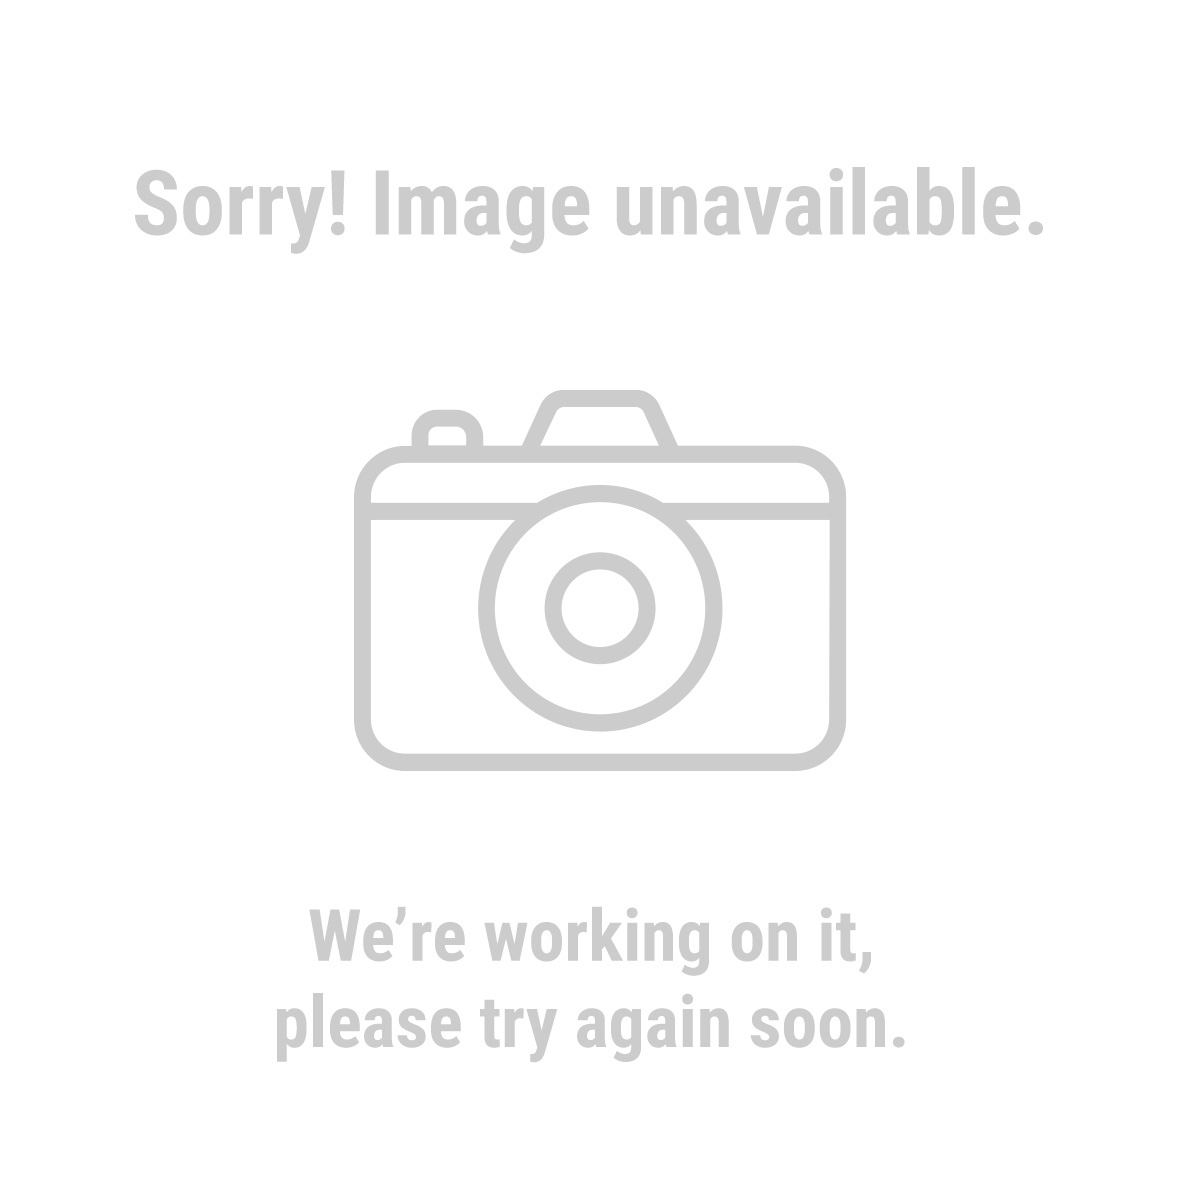 Chicago Electric Welding Systems 95015 6 Ft x 8 Ft Fiberglass Welding Blanket